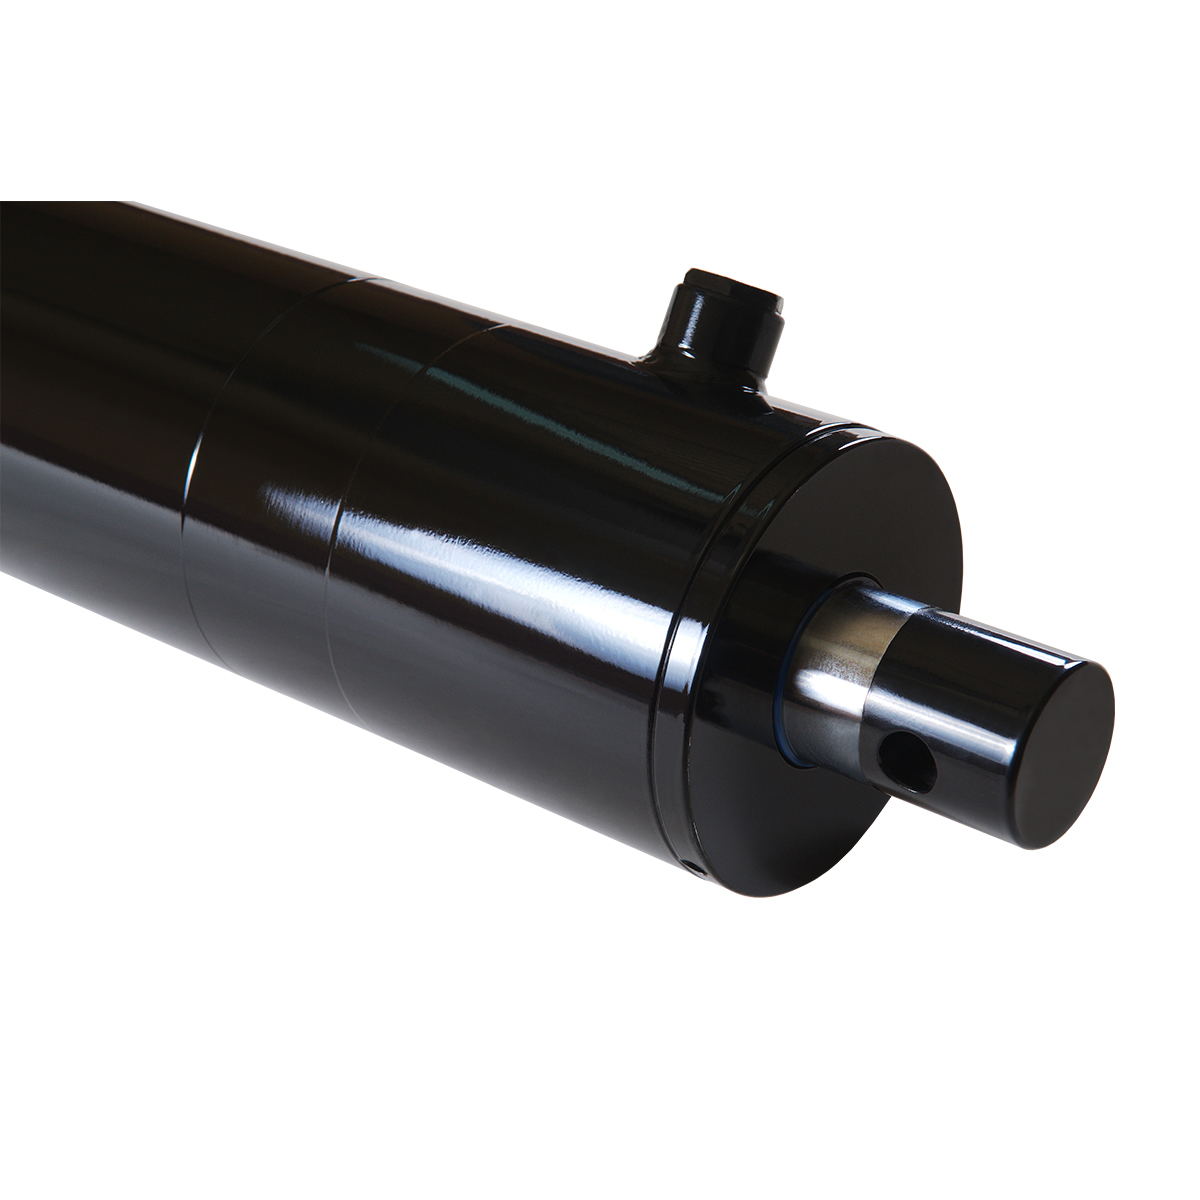 4 bore x 24 stroke hydraulic cylinder, log splitter double acting cylinder | Magister Hydraulics